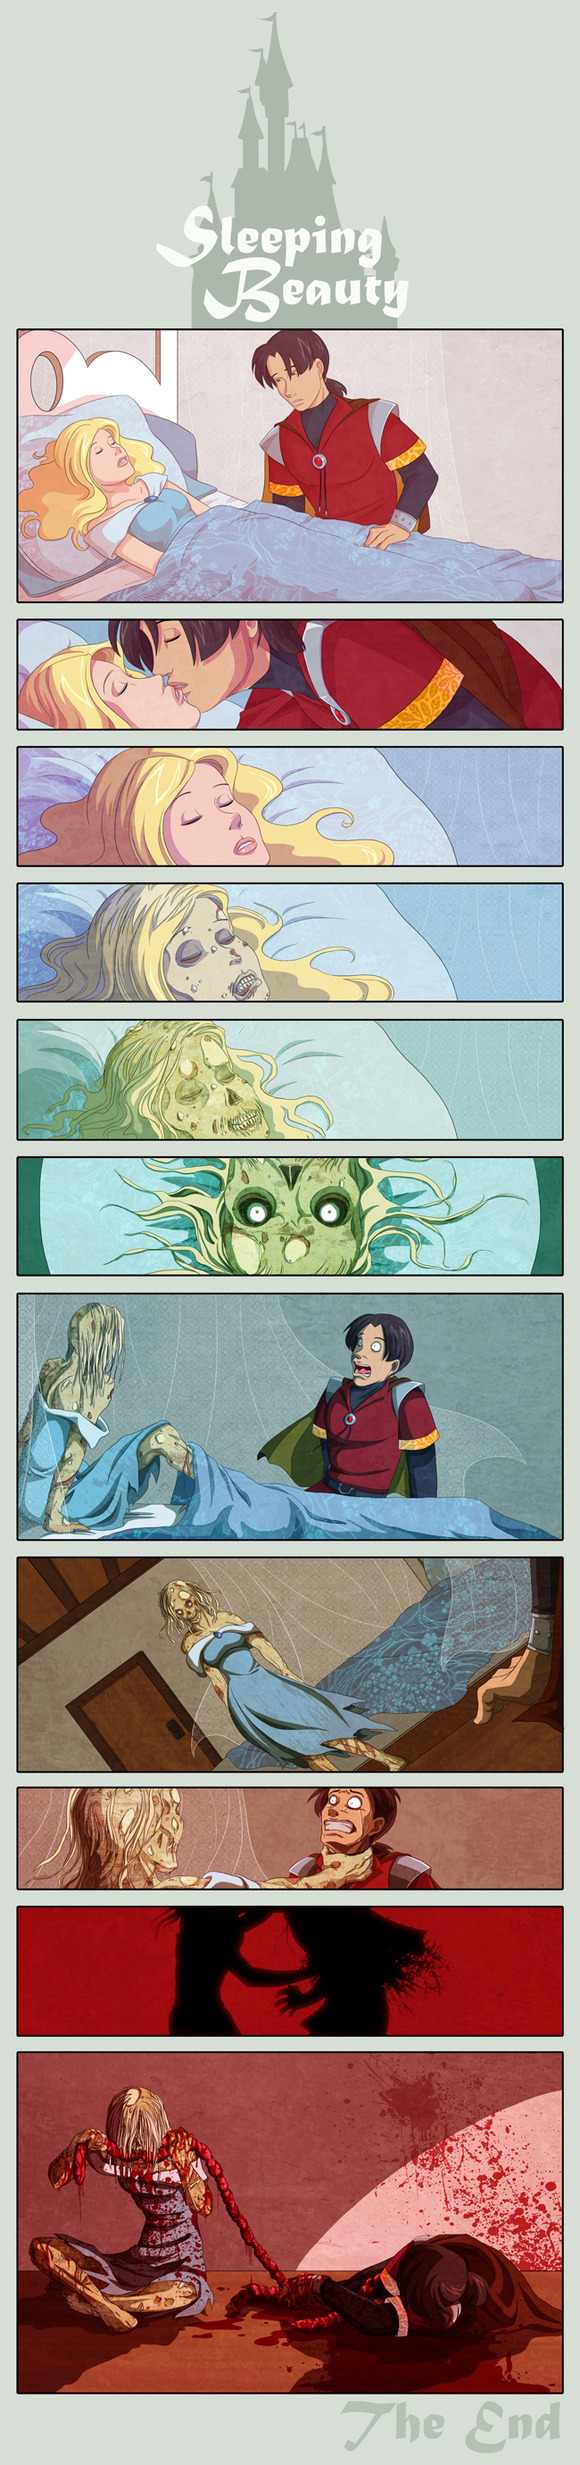 zombie_sleeping_beauty_comic_01